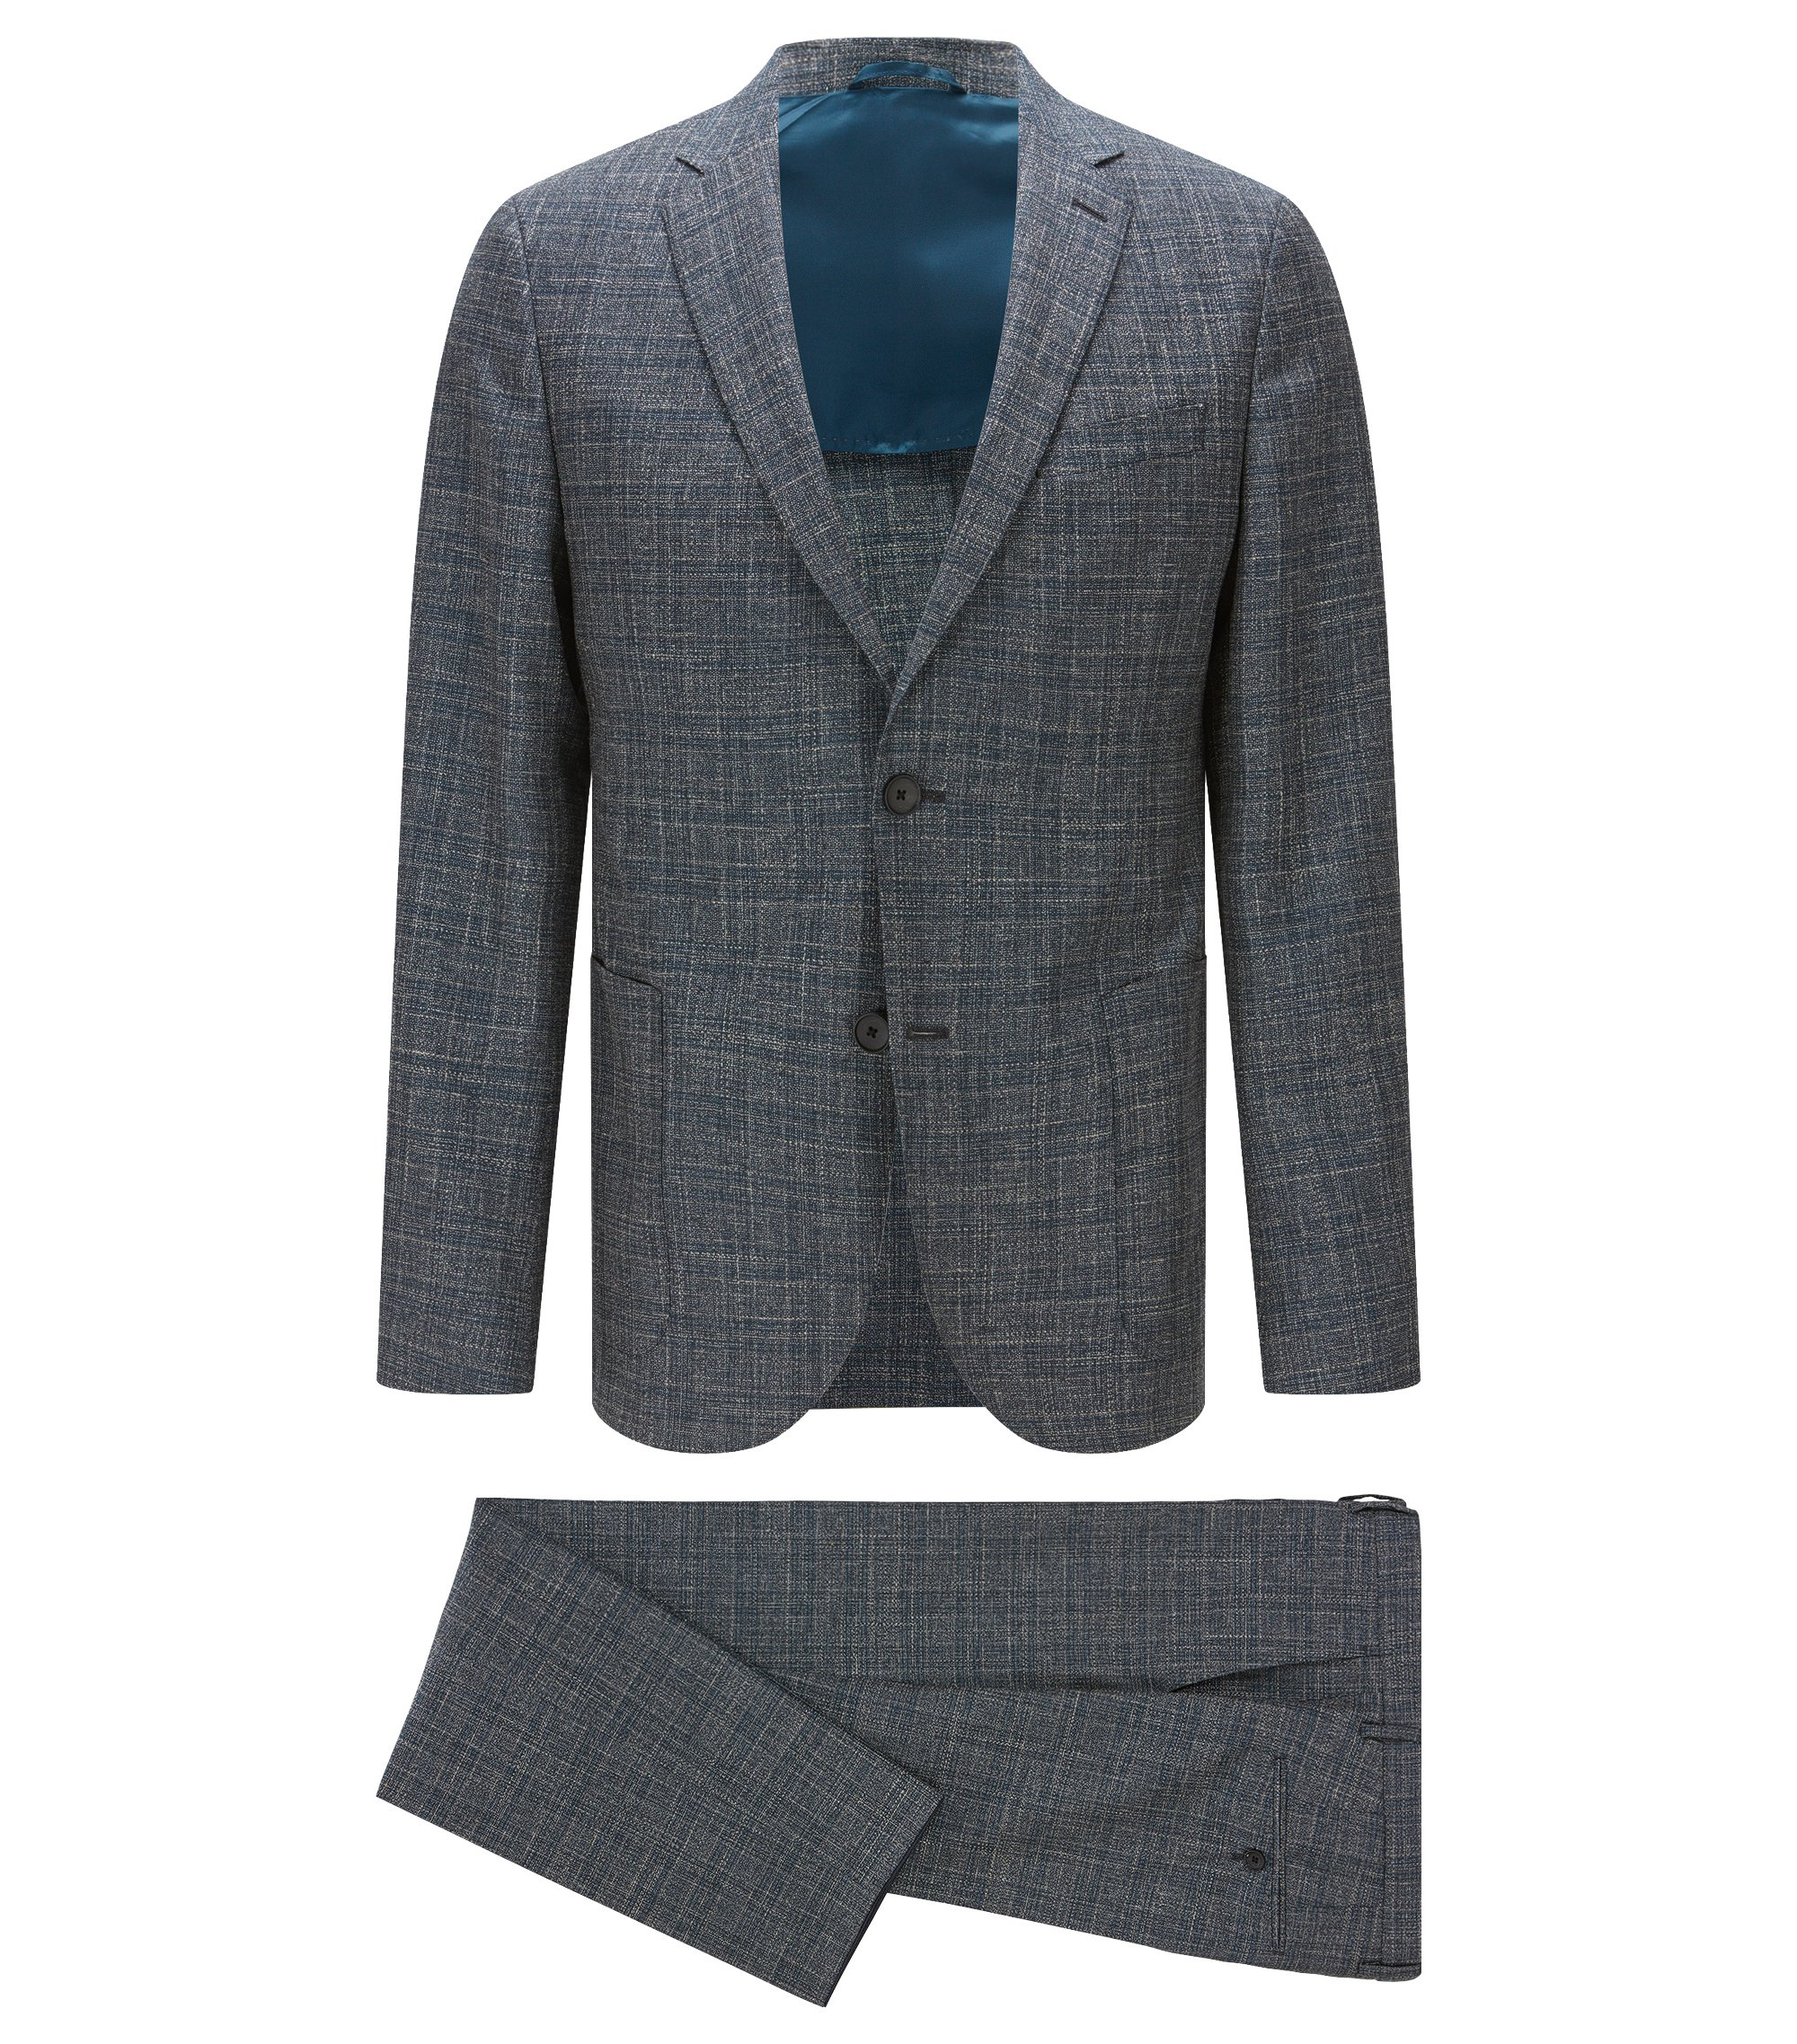 Virgin Wool Blend Suit, Slim Fit | Nalton/Bennno, Turquoise